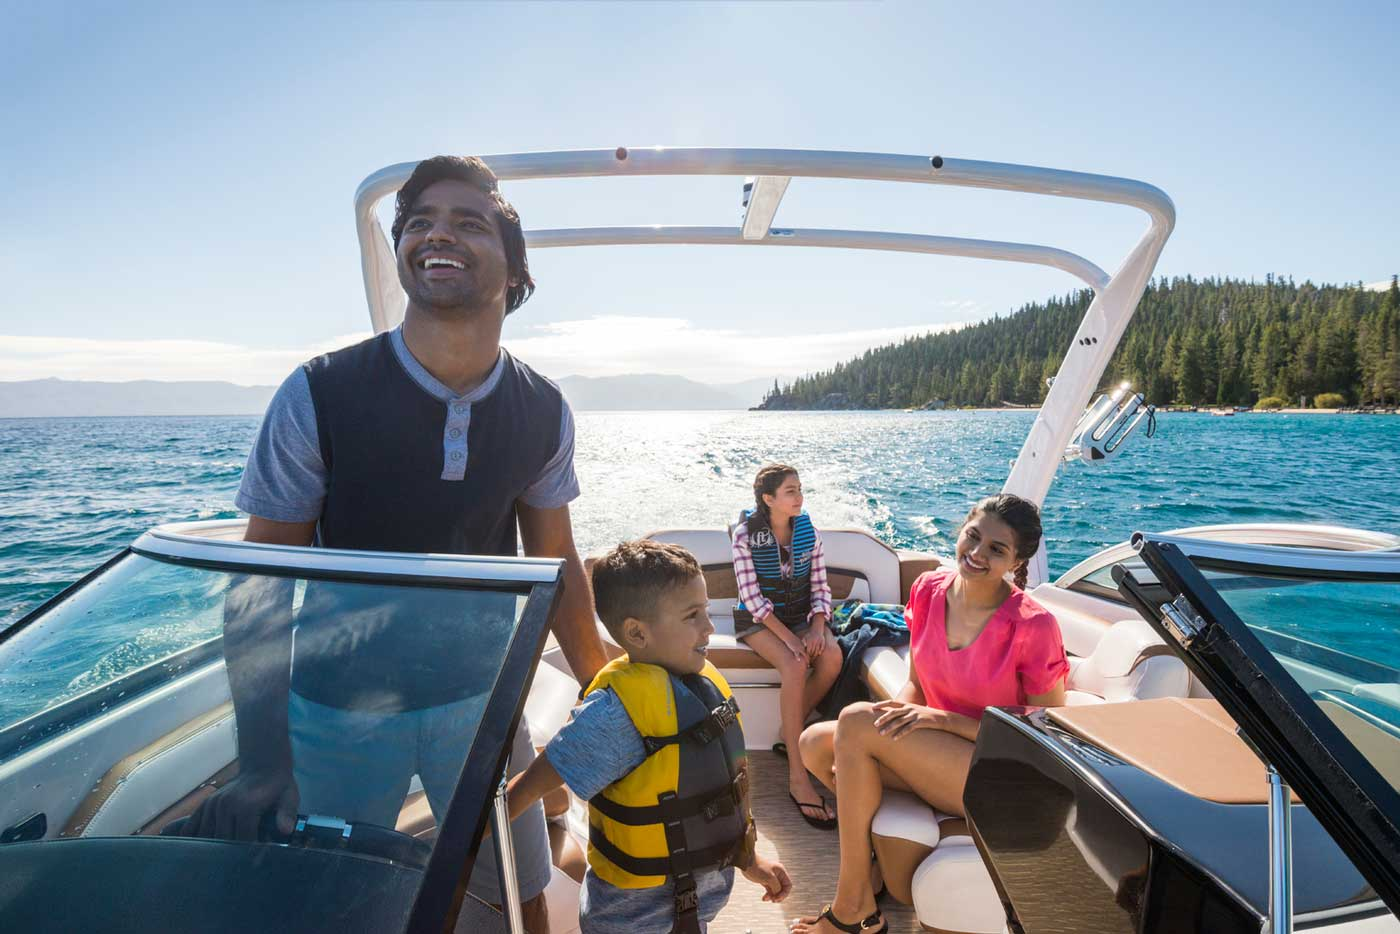 Family Boating Activities Summer